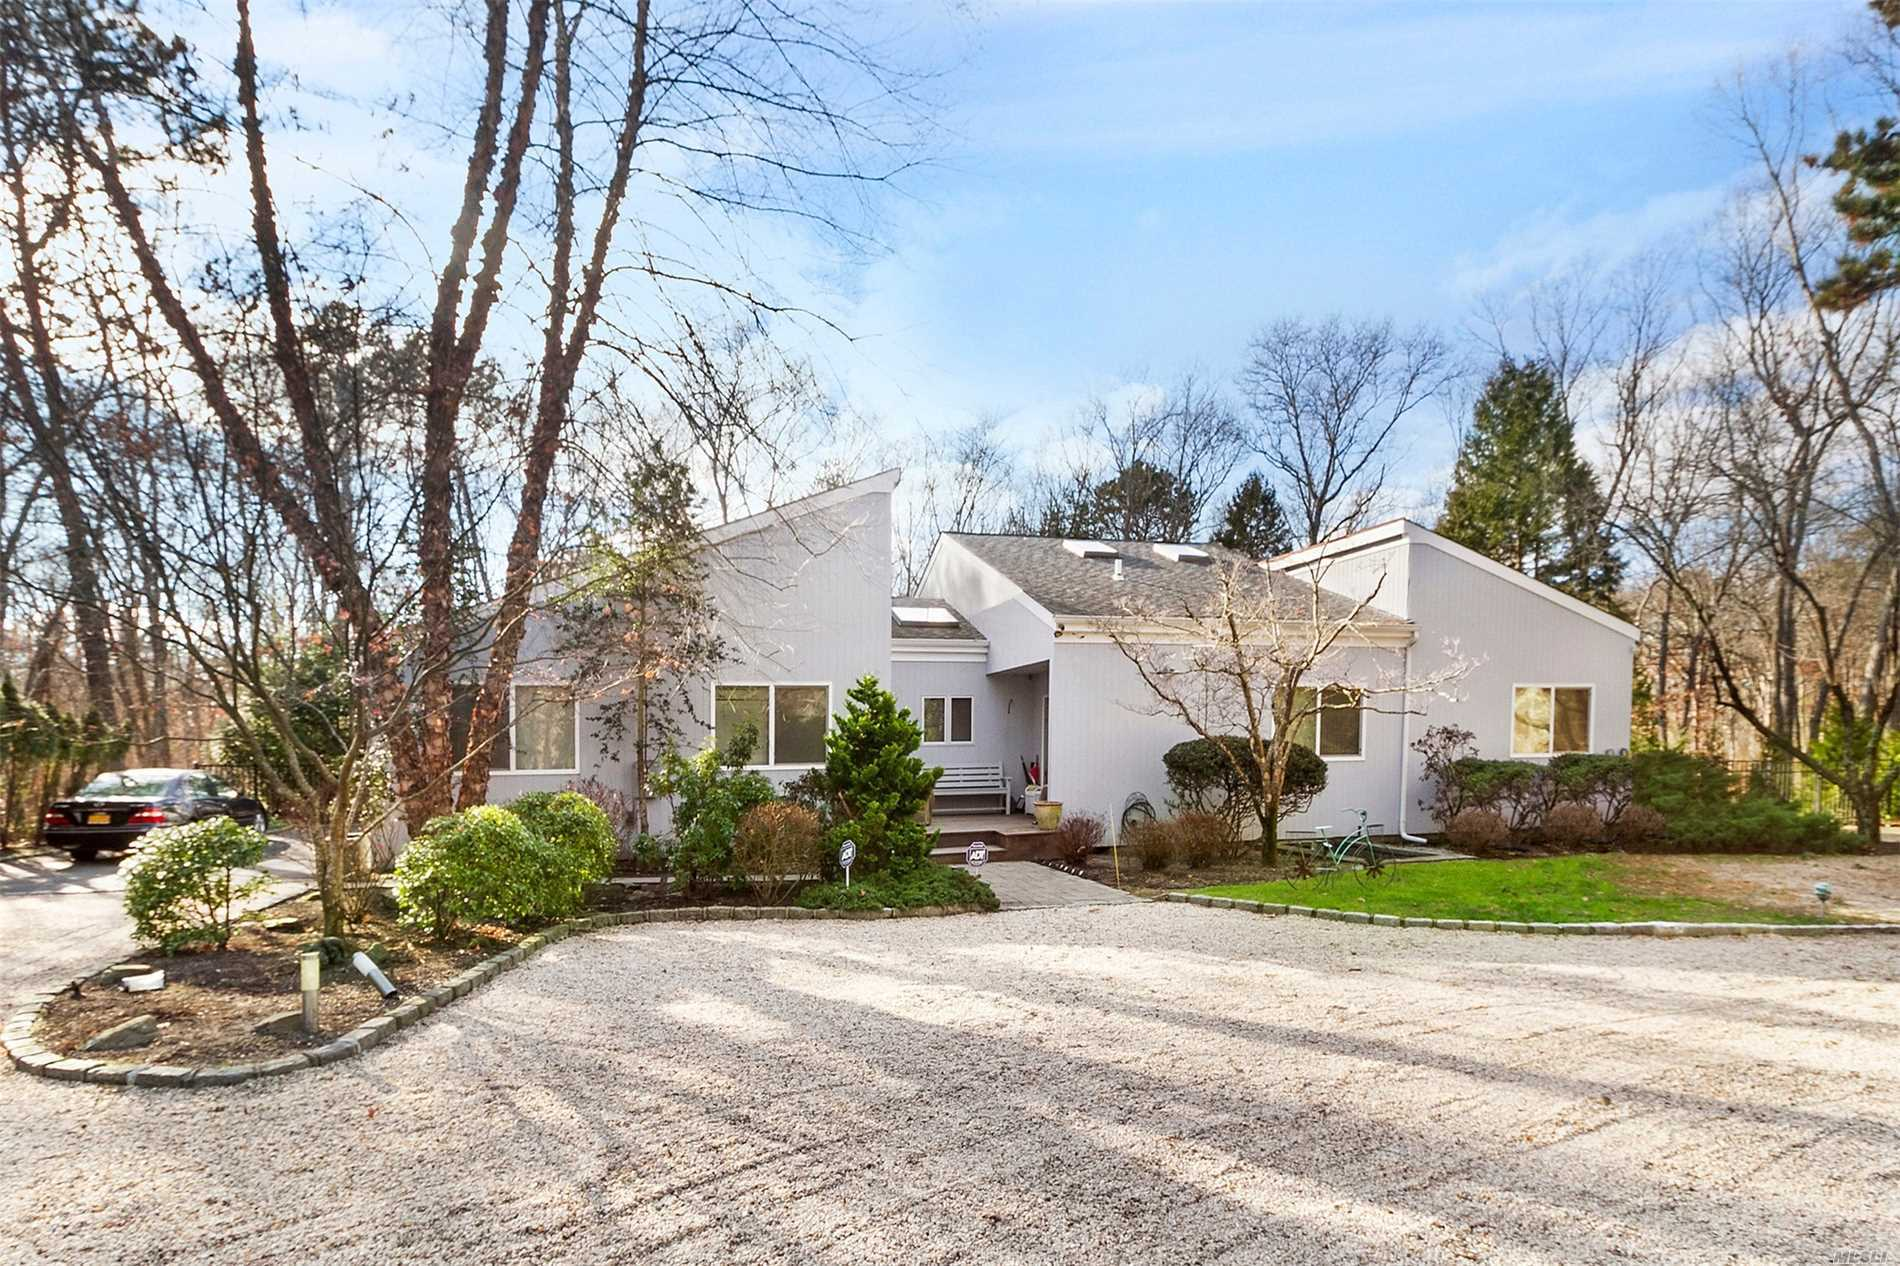 Photo of home for sale at 41 Park Cir, Quogue NY